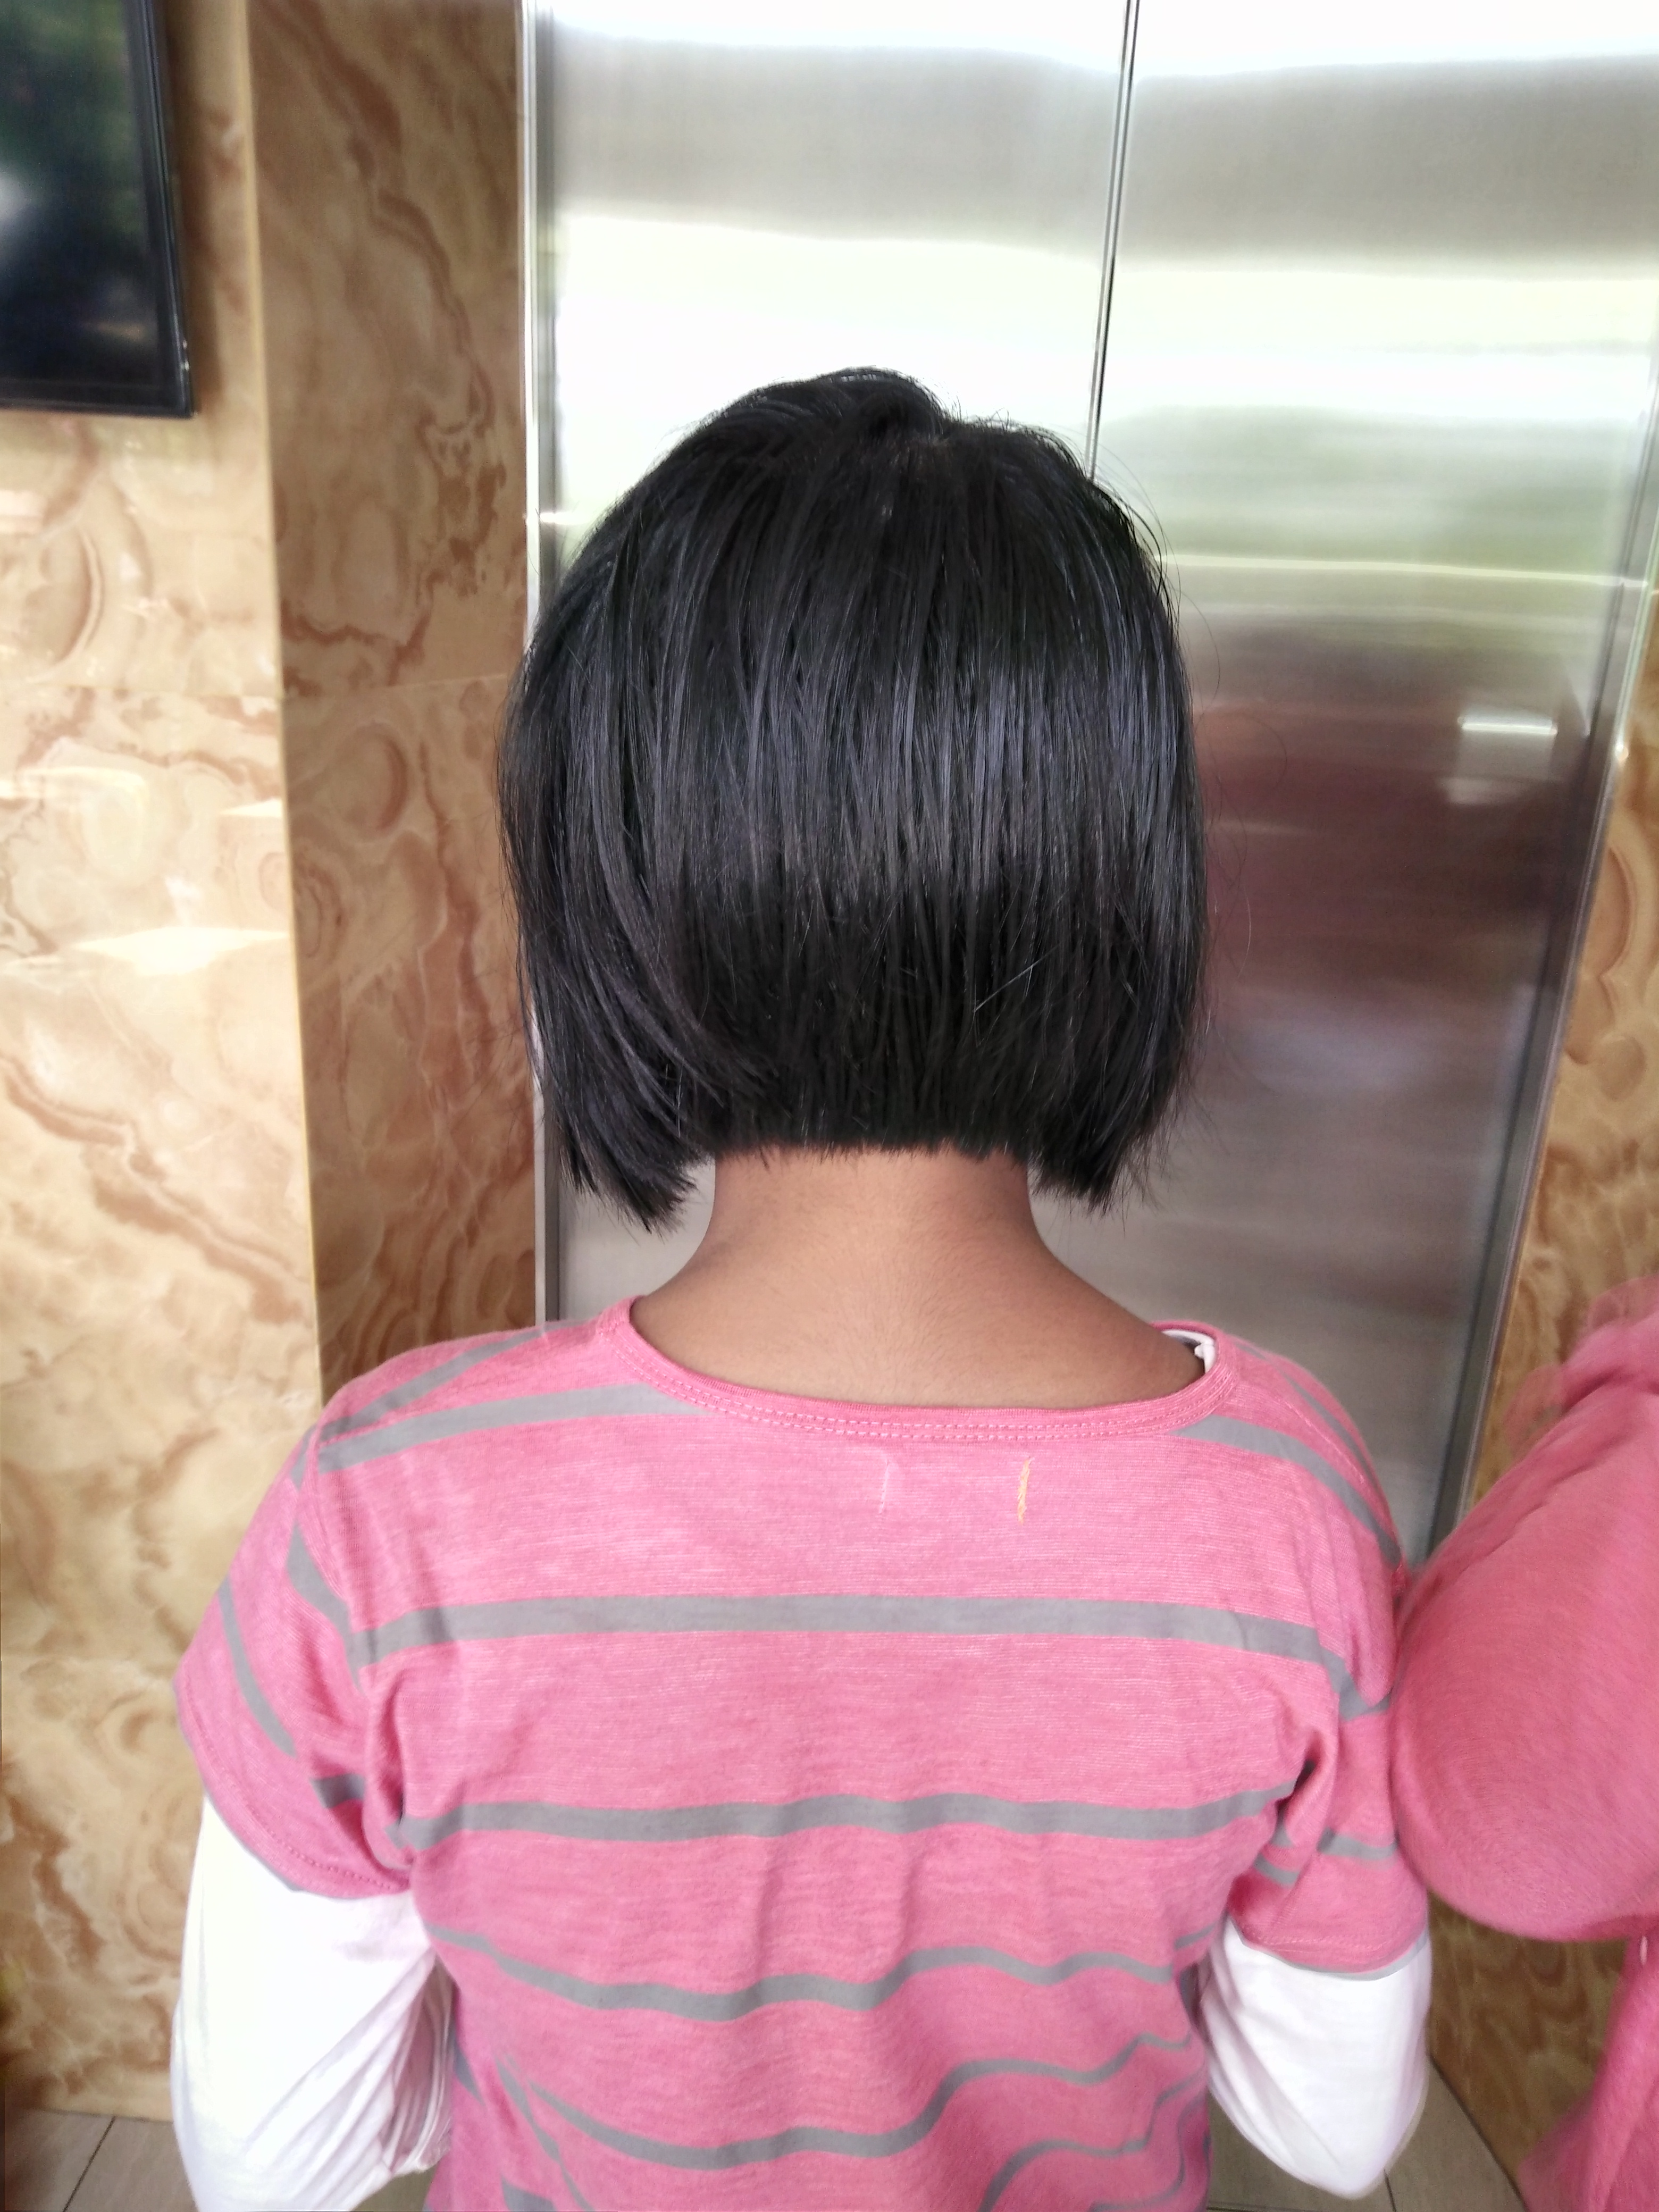 Filegirl With Bob Haircut Rear Viewg Wikimedia Commons